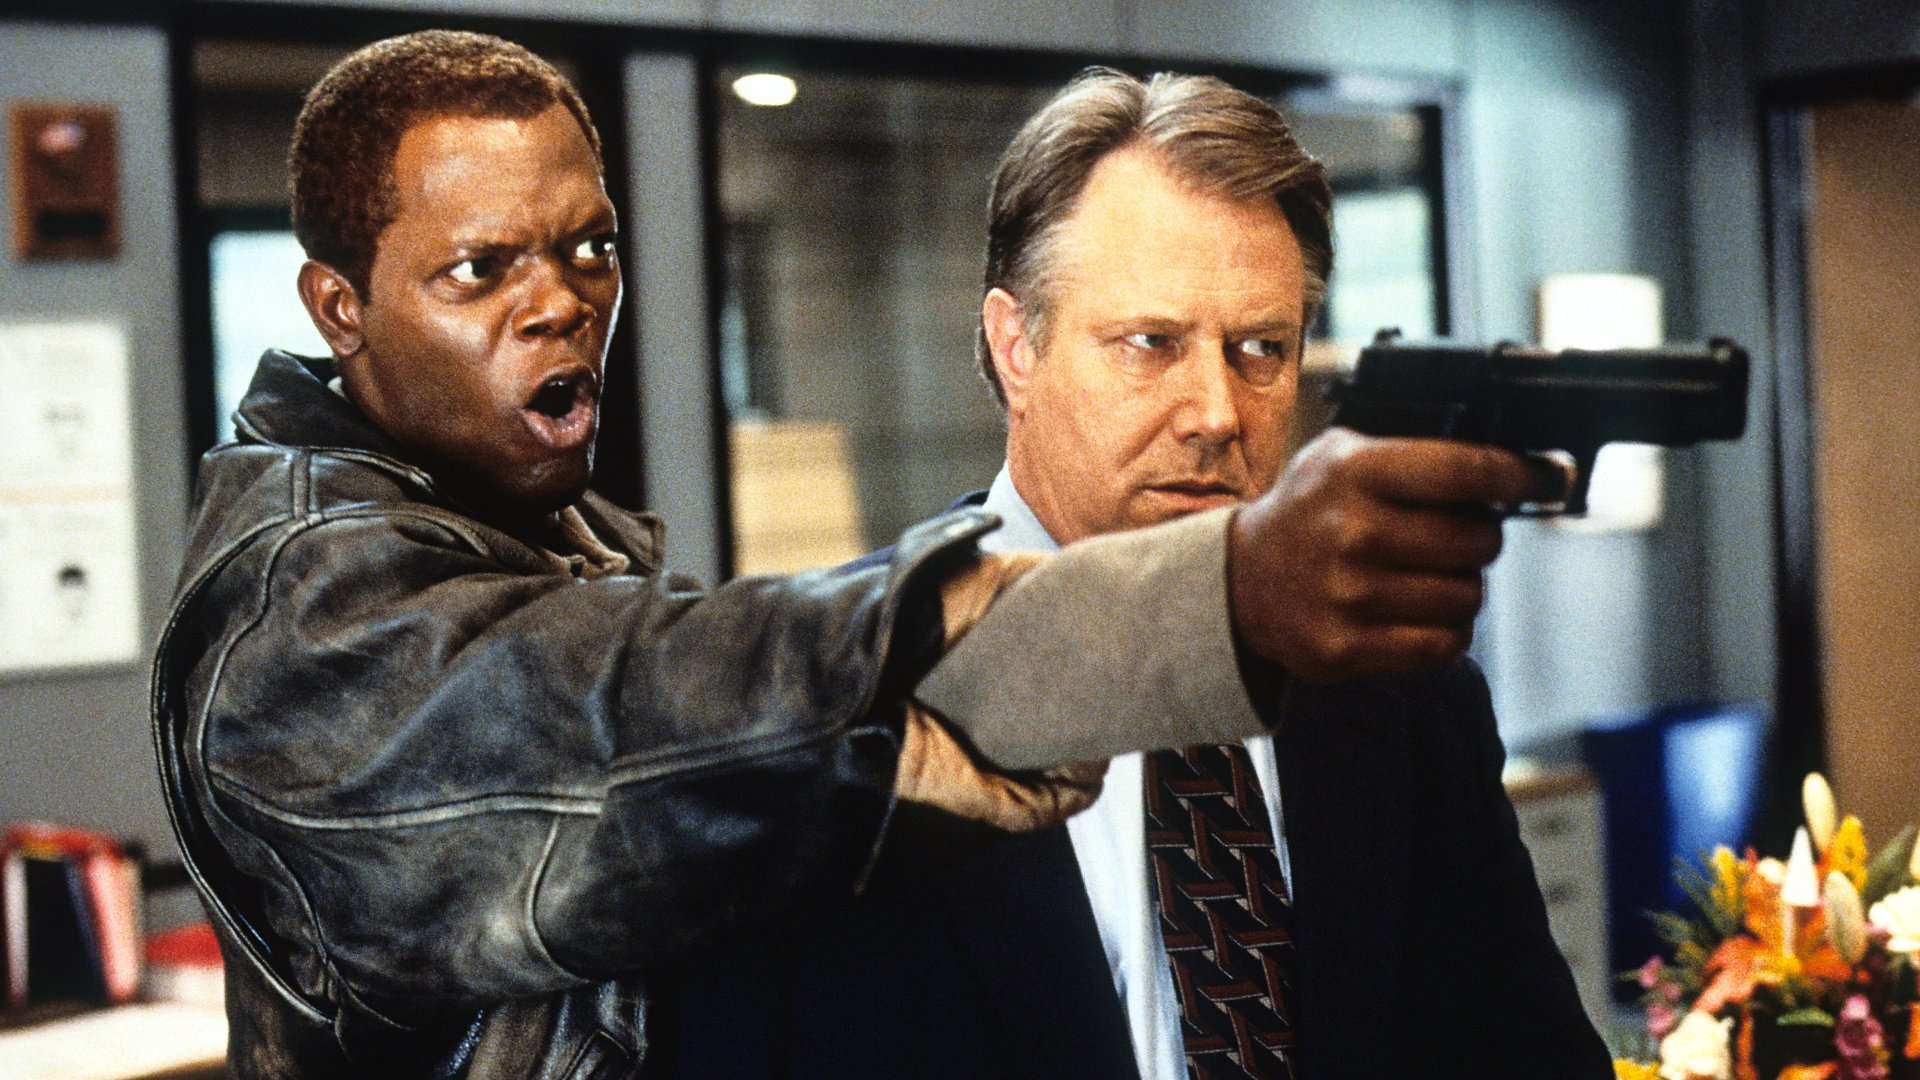 Samuel Jackson in The Negotiator